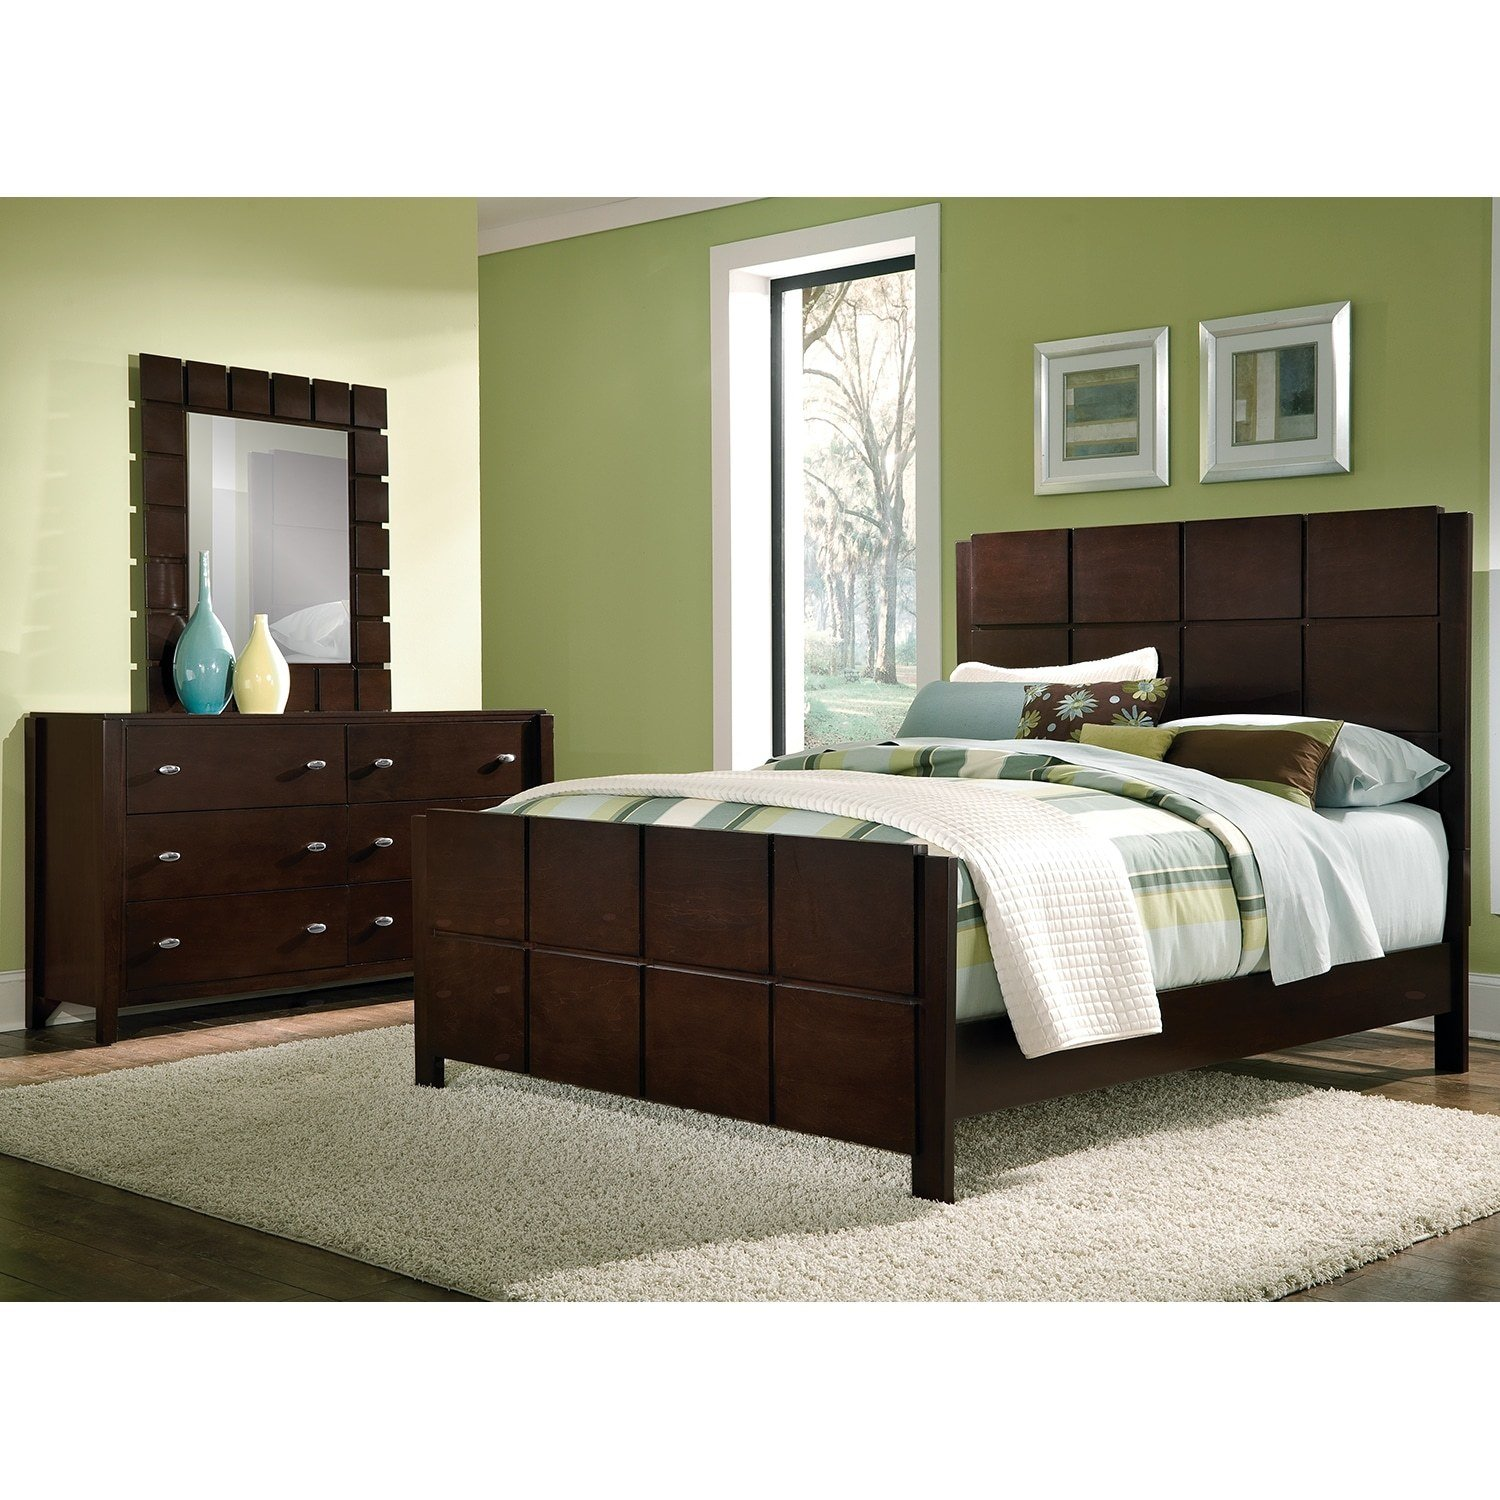 Best Mosaic 5 Piece Queen Bedroom Set Dark Brown Value City With Pictures